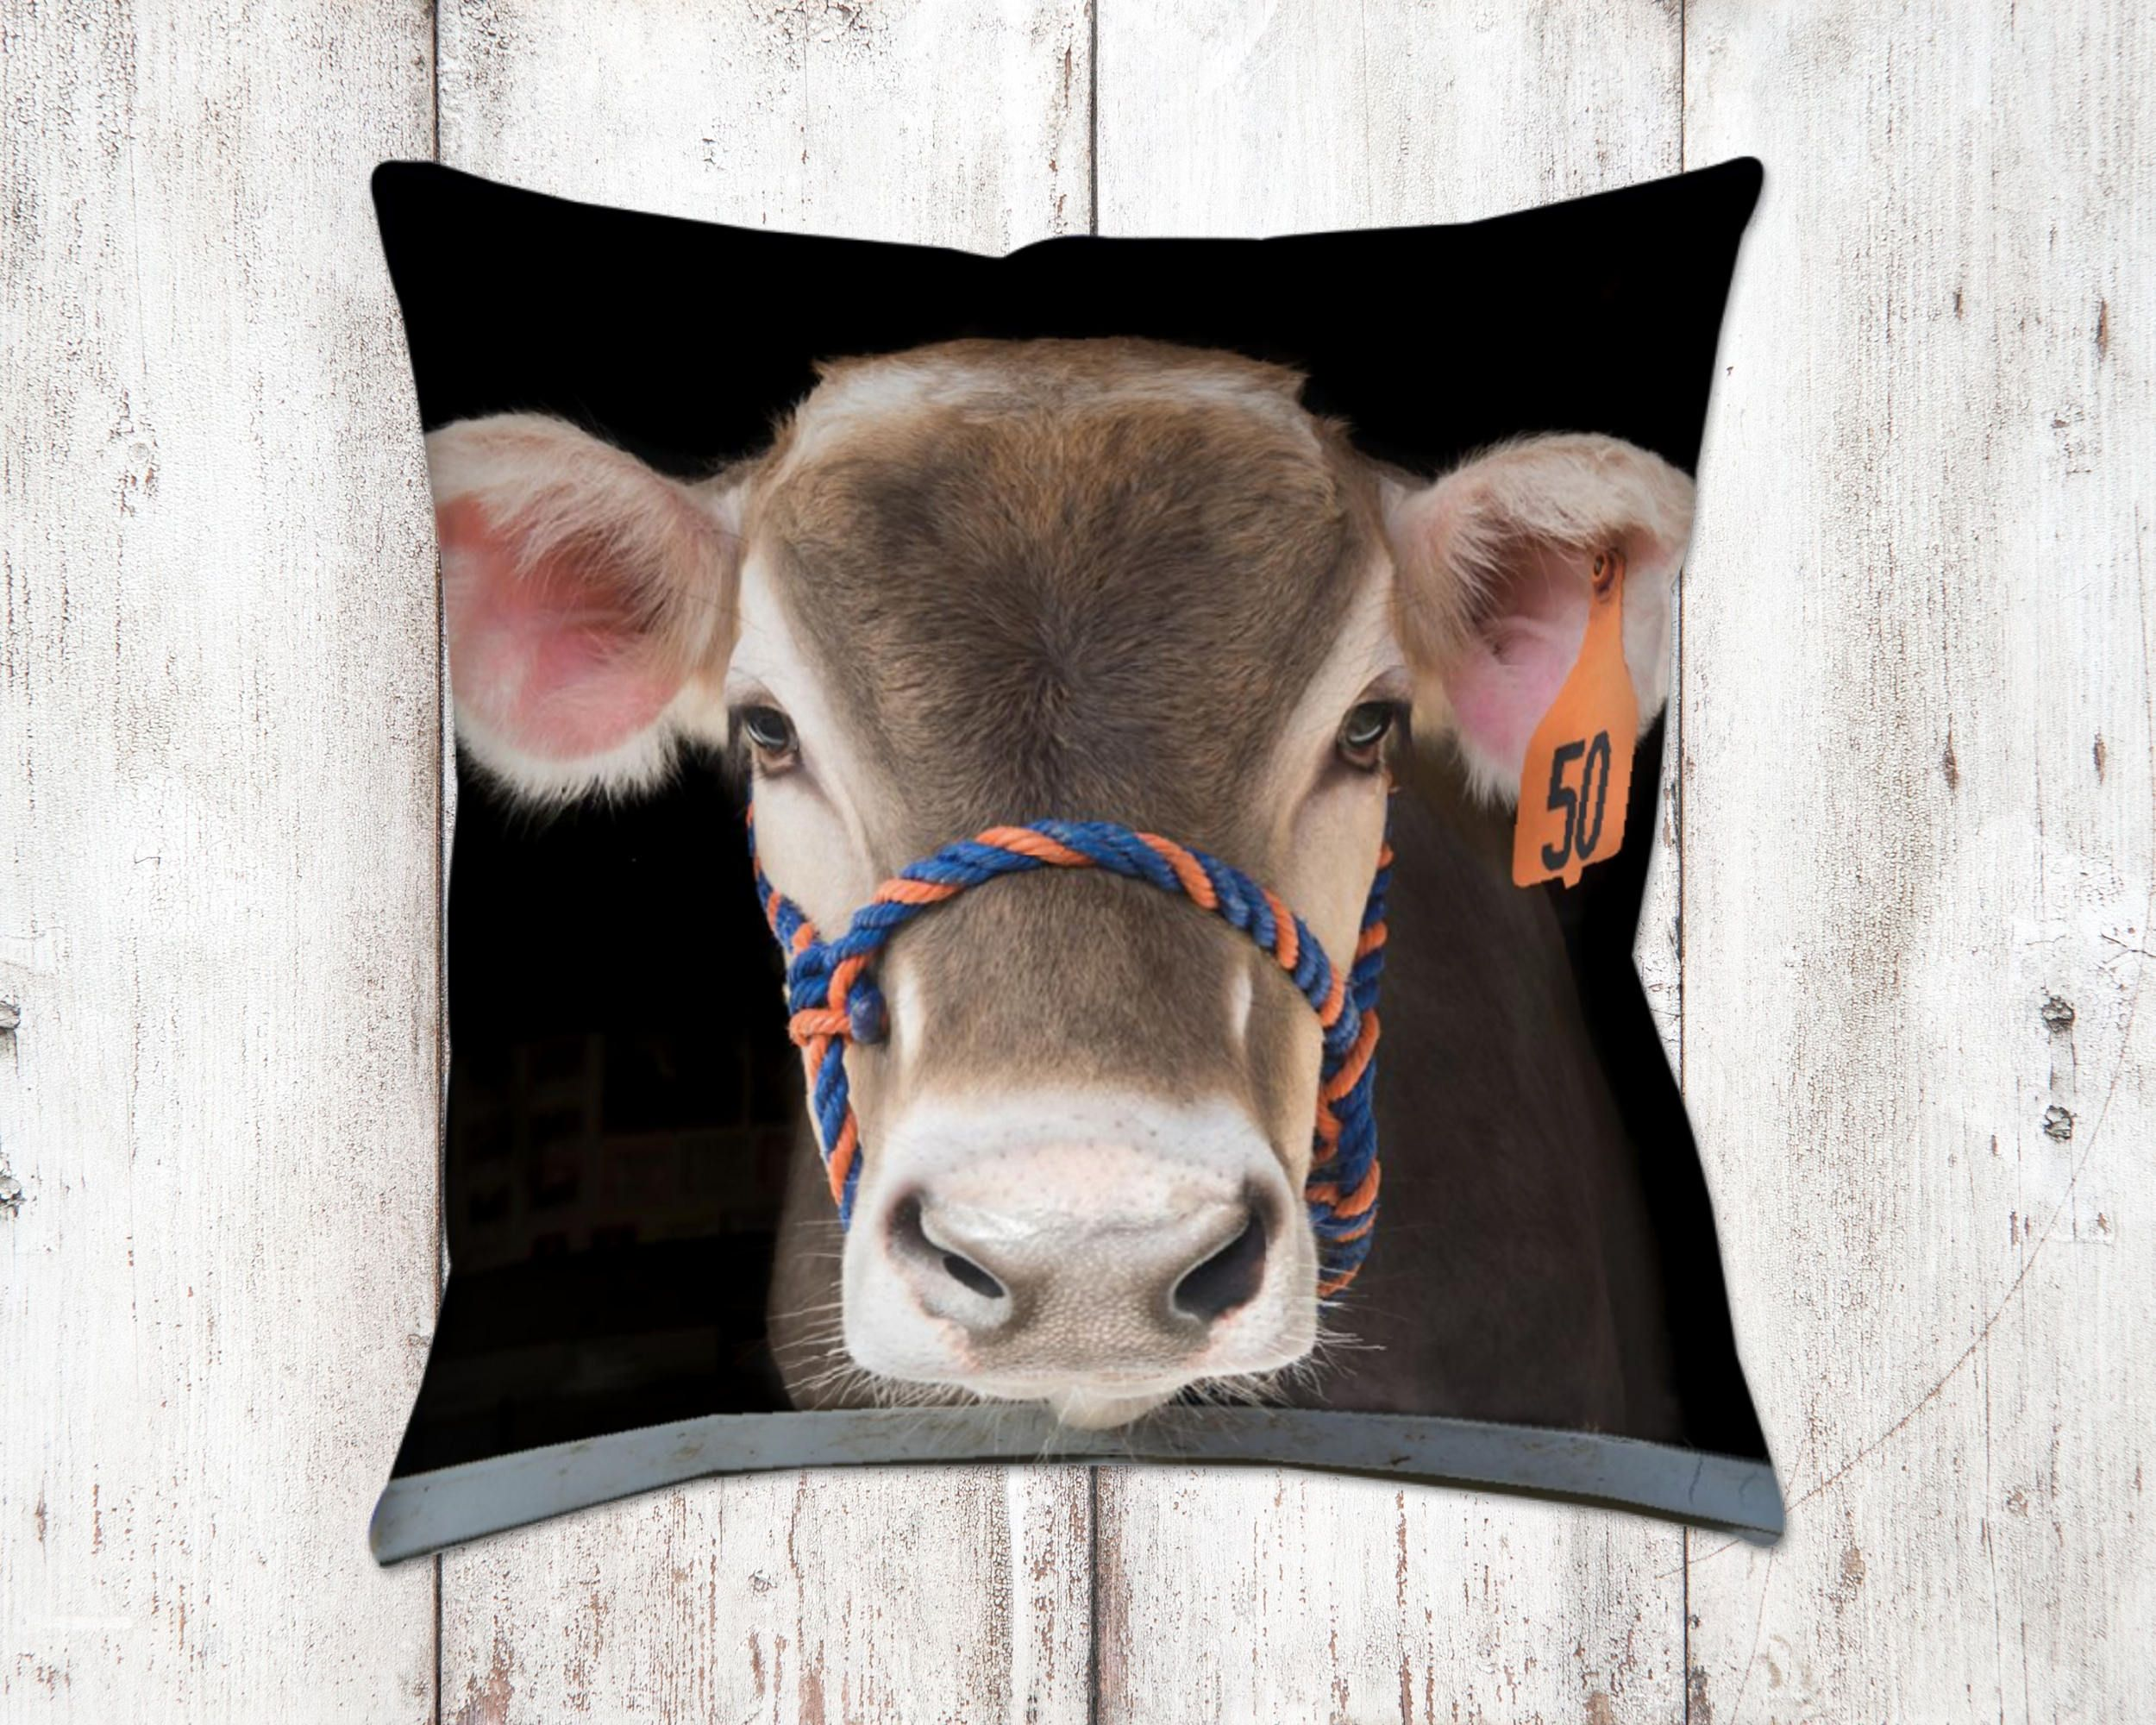 Dainty Jersey Cow Bella Decorative Pillow Throw Pillows Farm House Decor Homedecor Jersey Cow Bella Decorative Pillow Throw Pillows Farm House Cow Home Decor Cowboy Home Decor Wholesale home decor Cow Home Decor